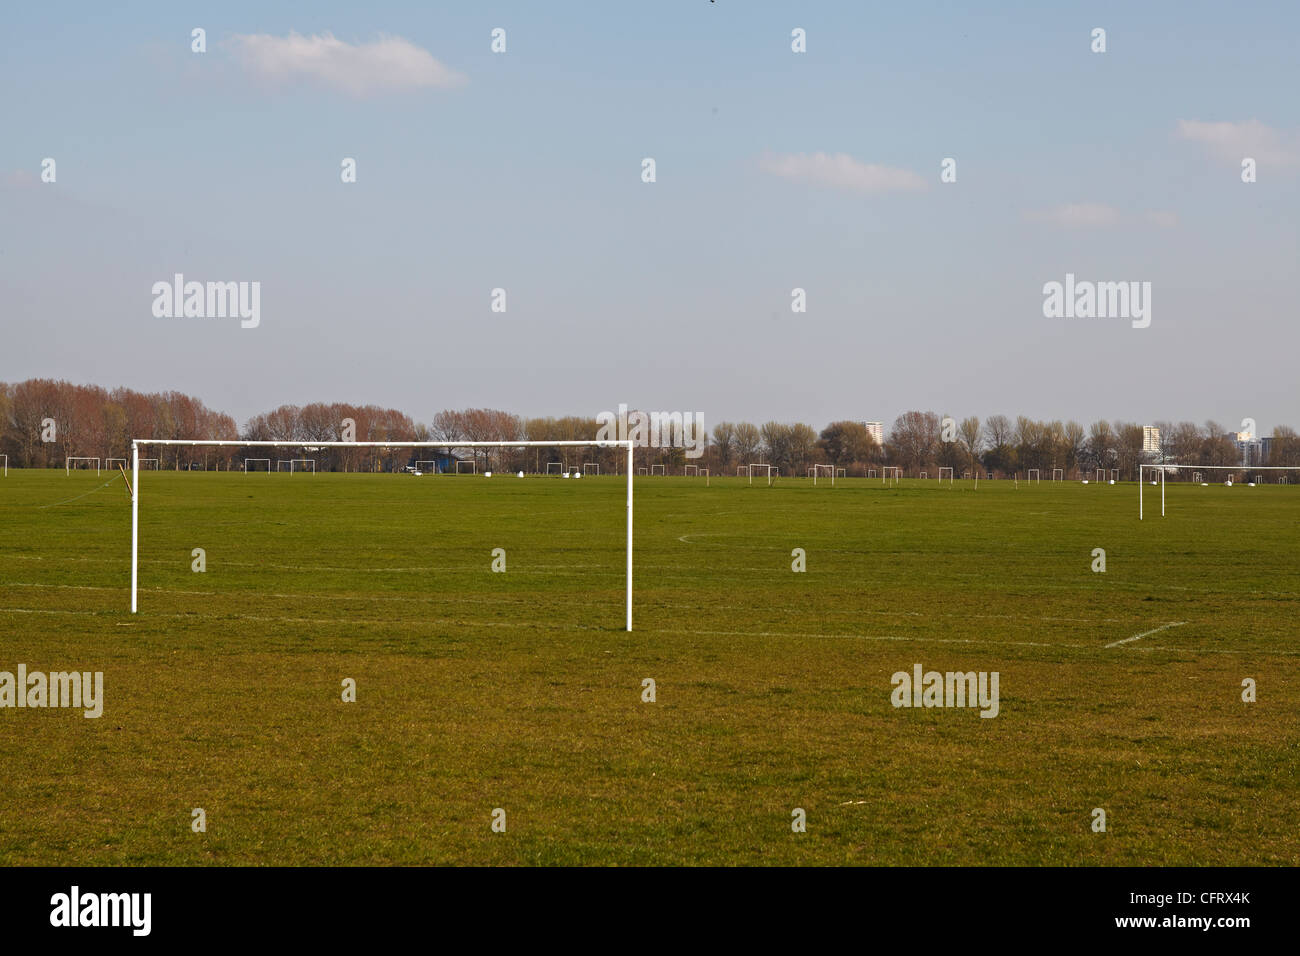 A large number of football pitches stand unused on a sunny day - Stock Image